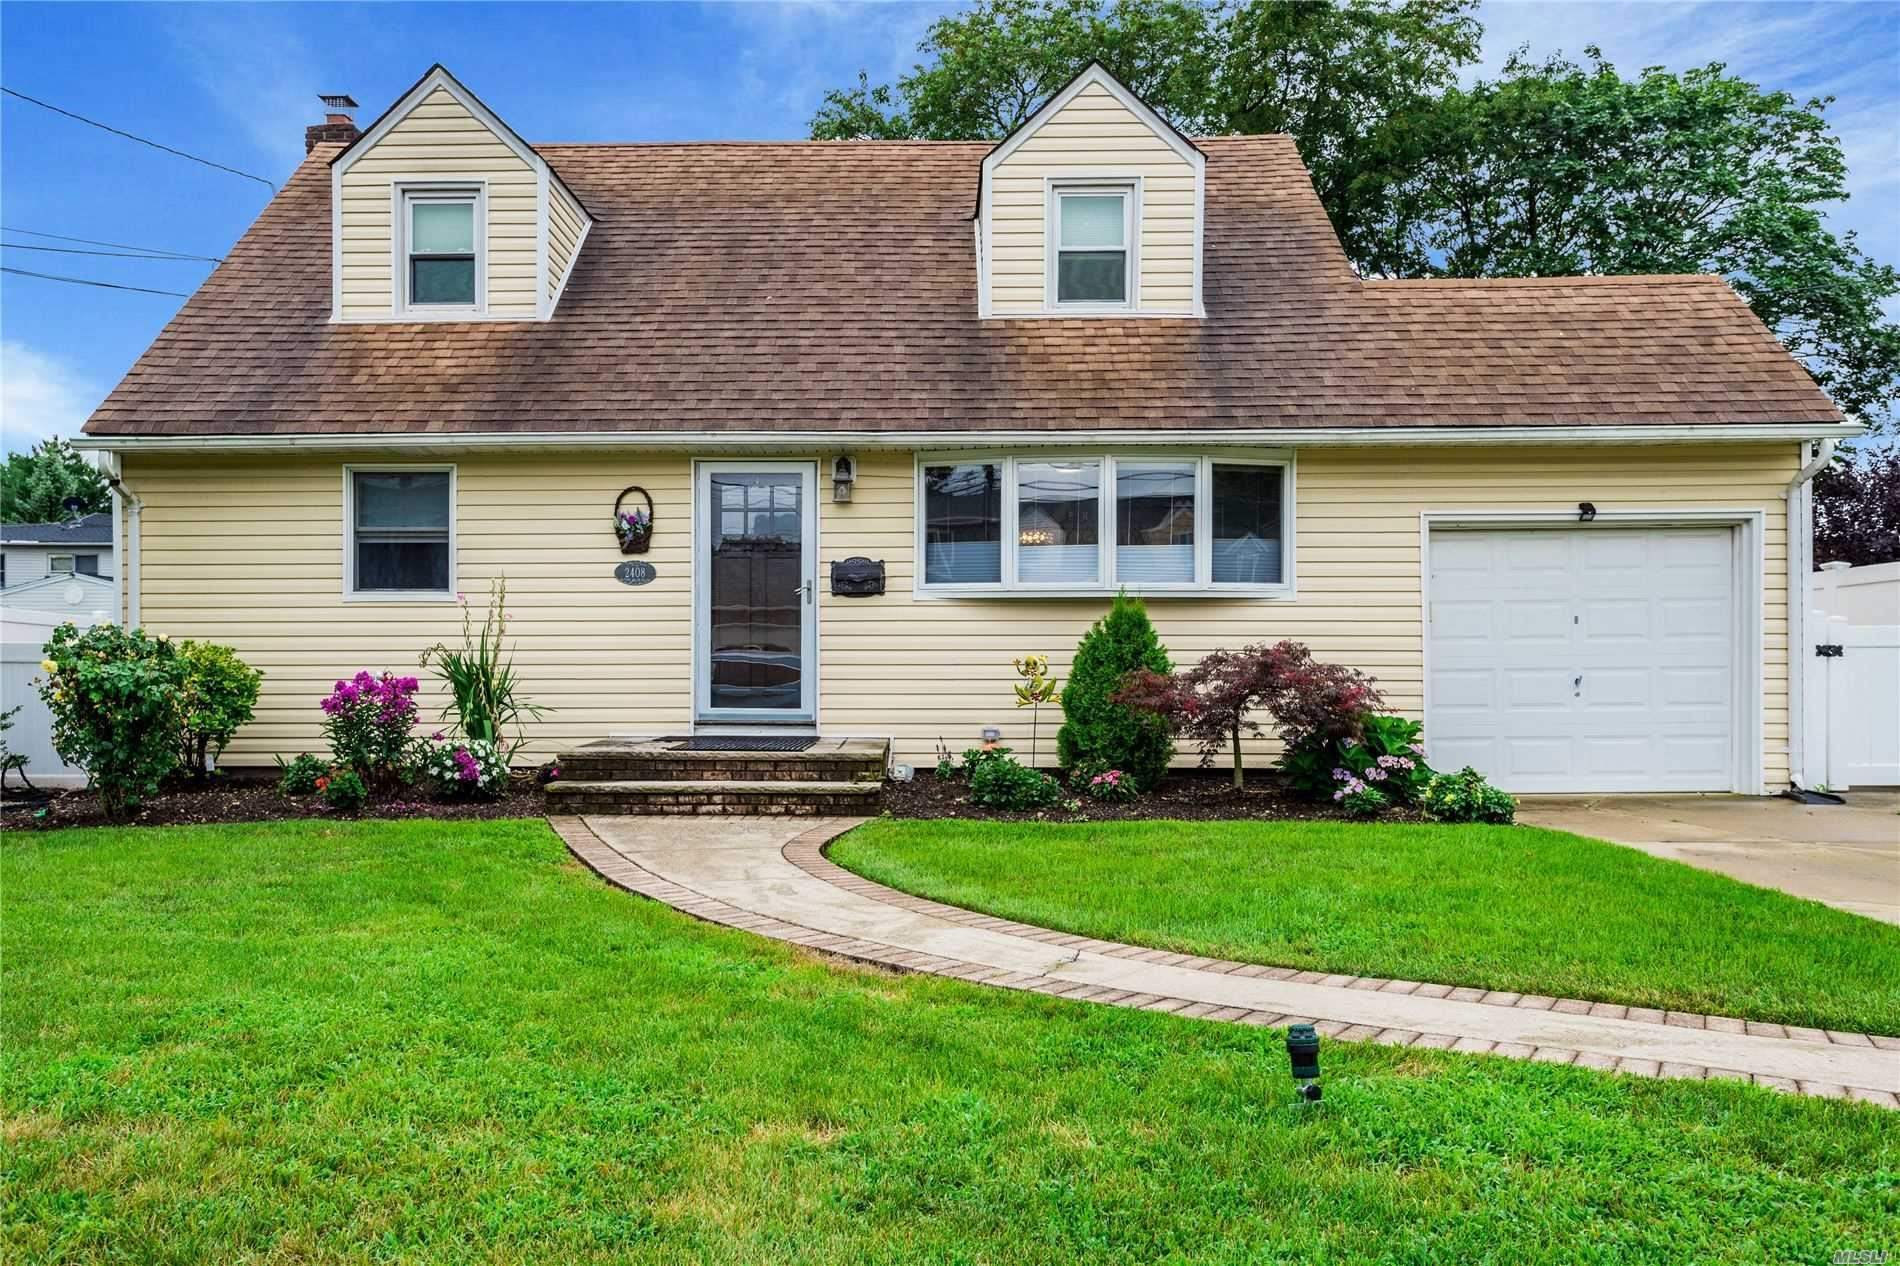 2408 Gladmore St, East Meadow, NY 11554 - MLS#: 3239135